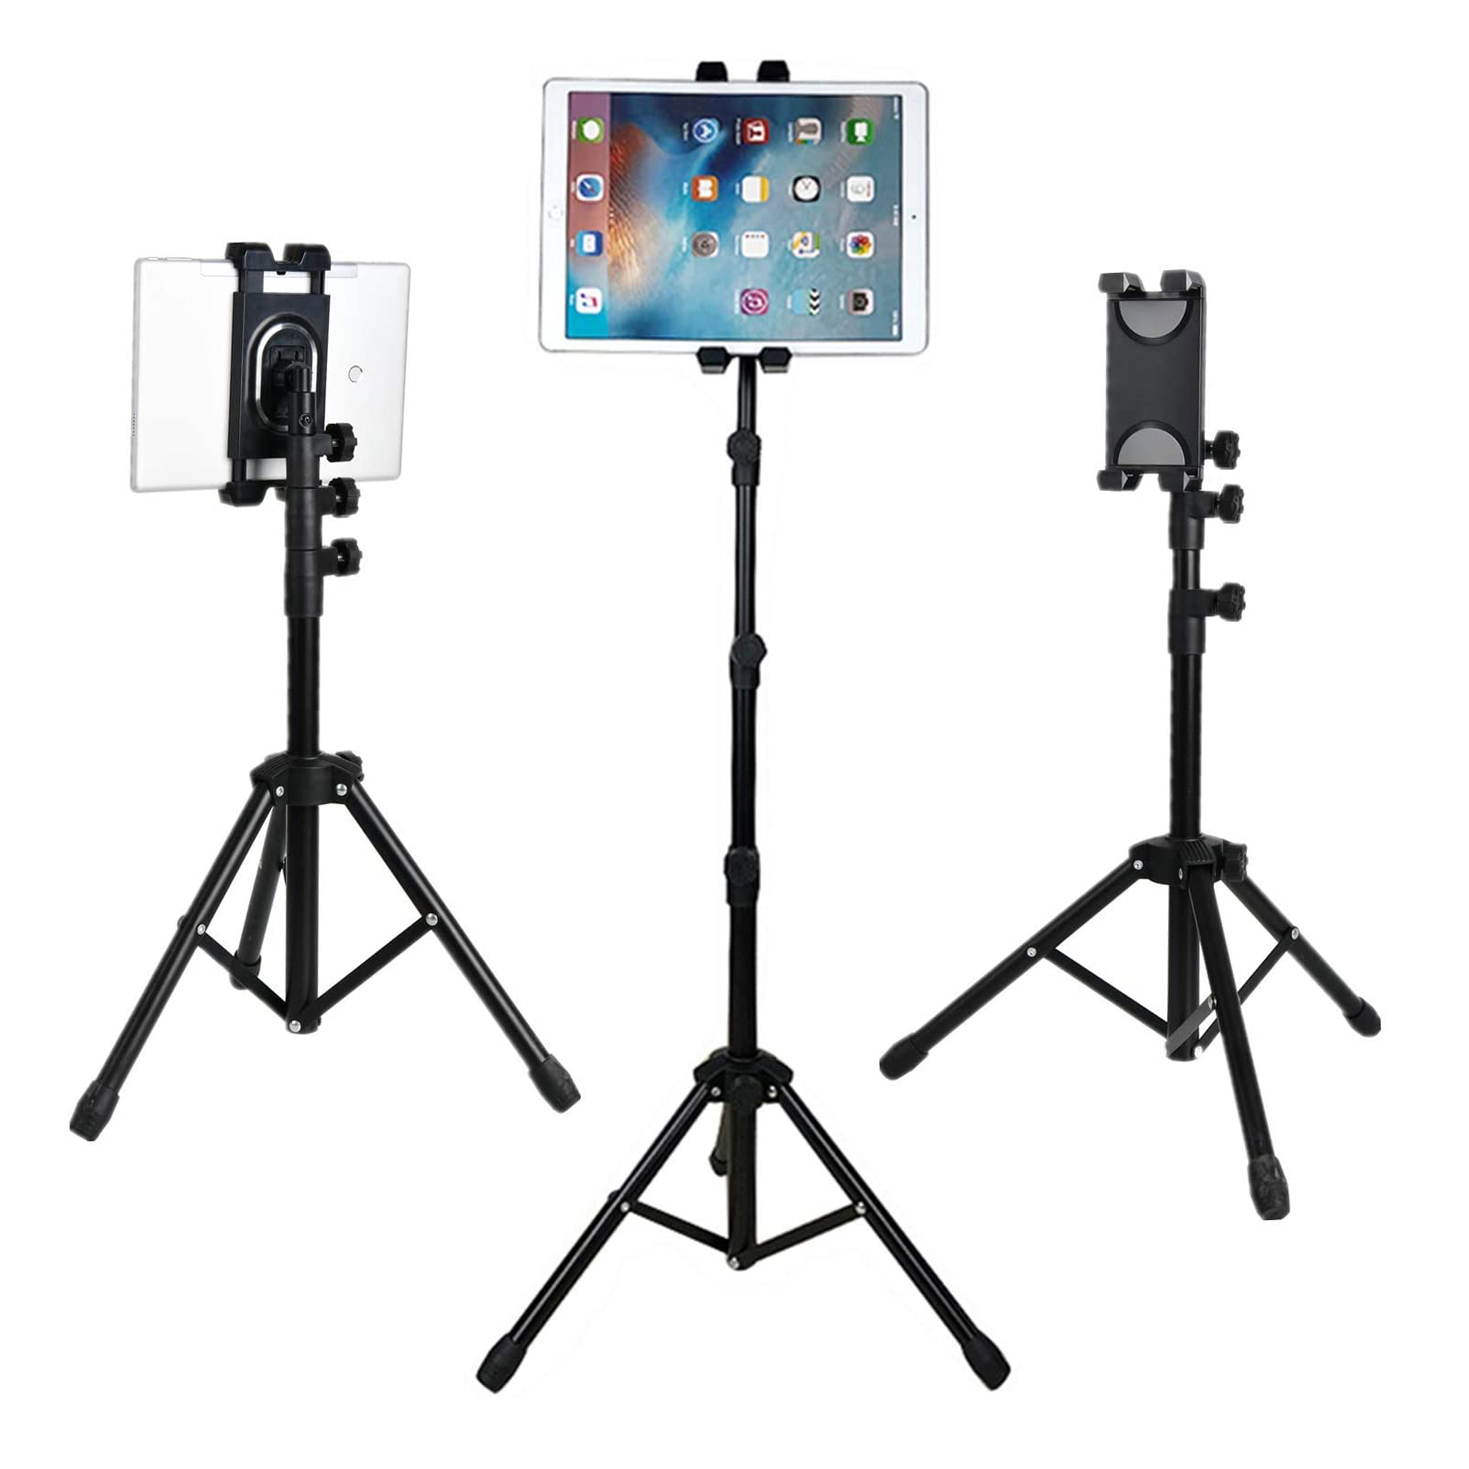 Promage iPad Tripod Mount Tablet Holder Stand, 360 Adjustable Cradle Bracket Tripod Mount for iPad Mobile Photo & Video Accessories Promage